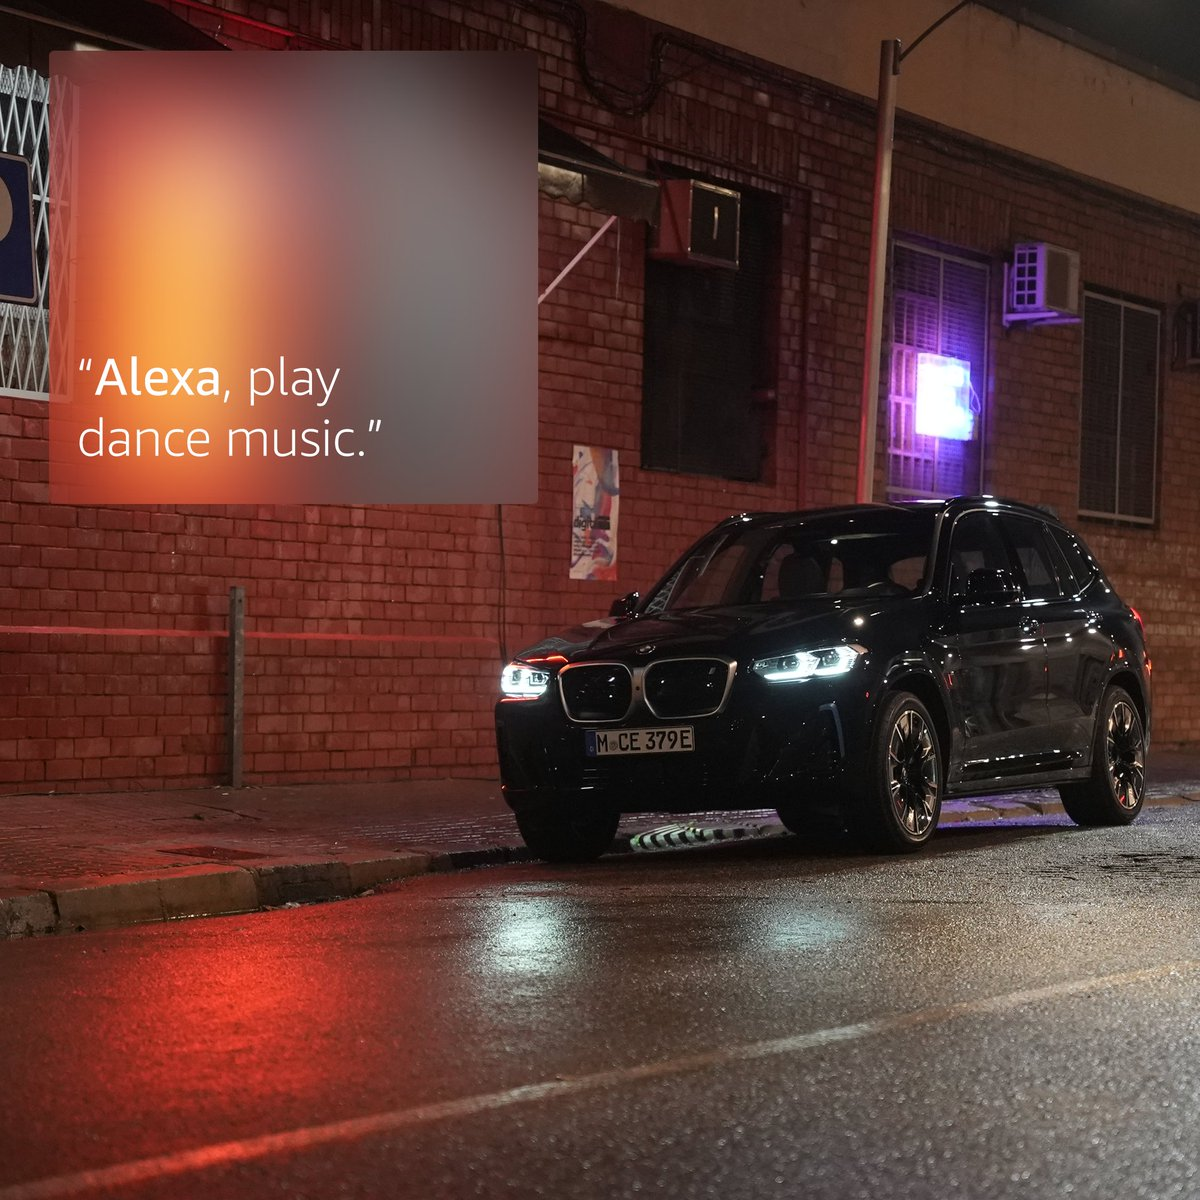 Find me in the #BMW X3, you can ask for jokes and fun facts on your way to the party and be a chit-chat champion.